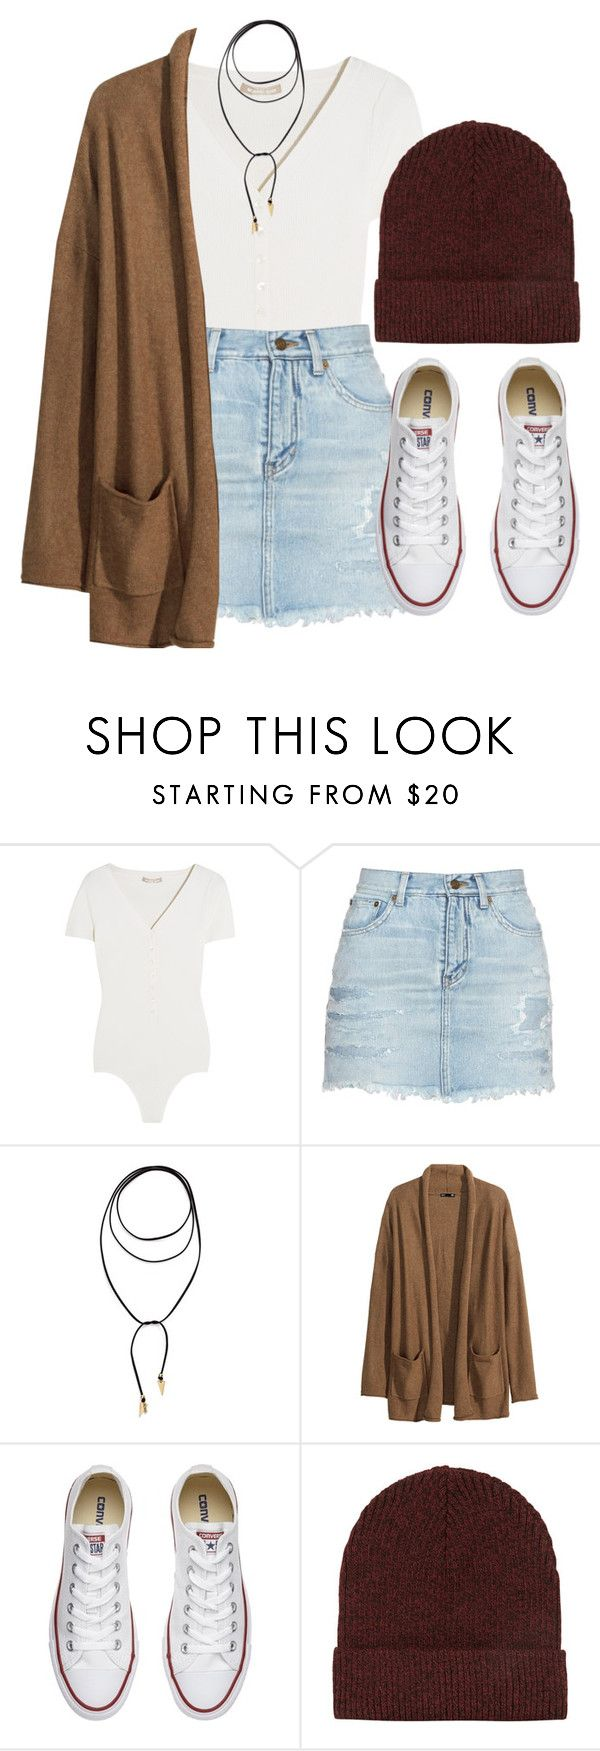 """""""Fall"""" by feathersandroses ❤ liked on Polyvore featuring Michael Kors, Yves Saint Laurent, Vanessa Mooney, H&M, Converse and Topshop"""